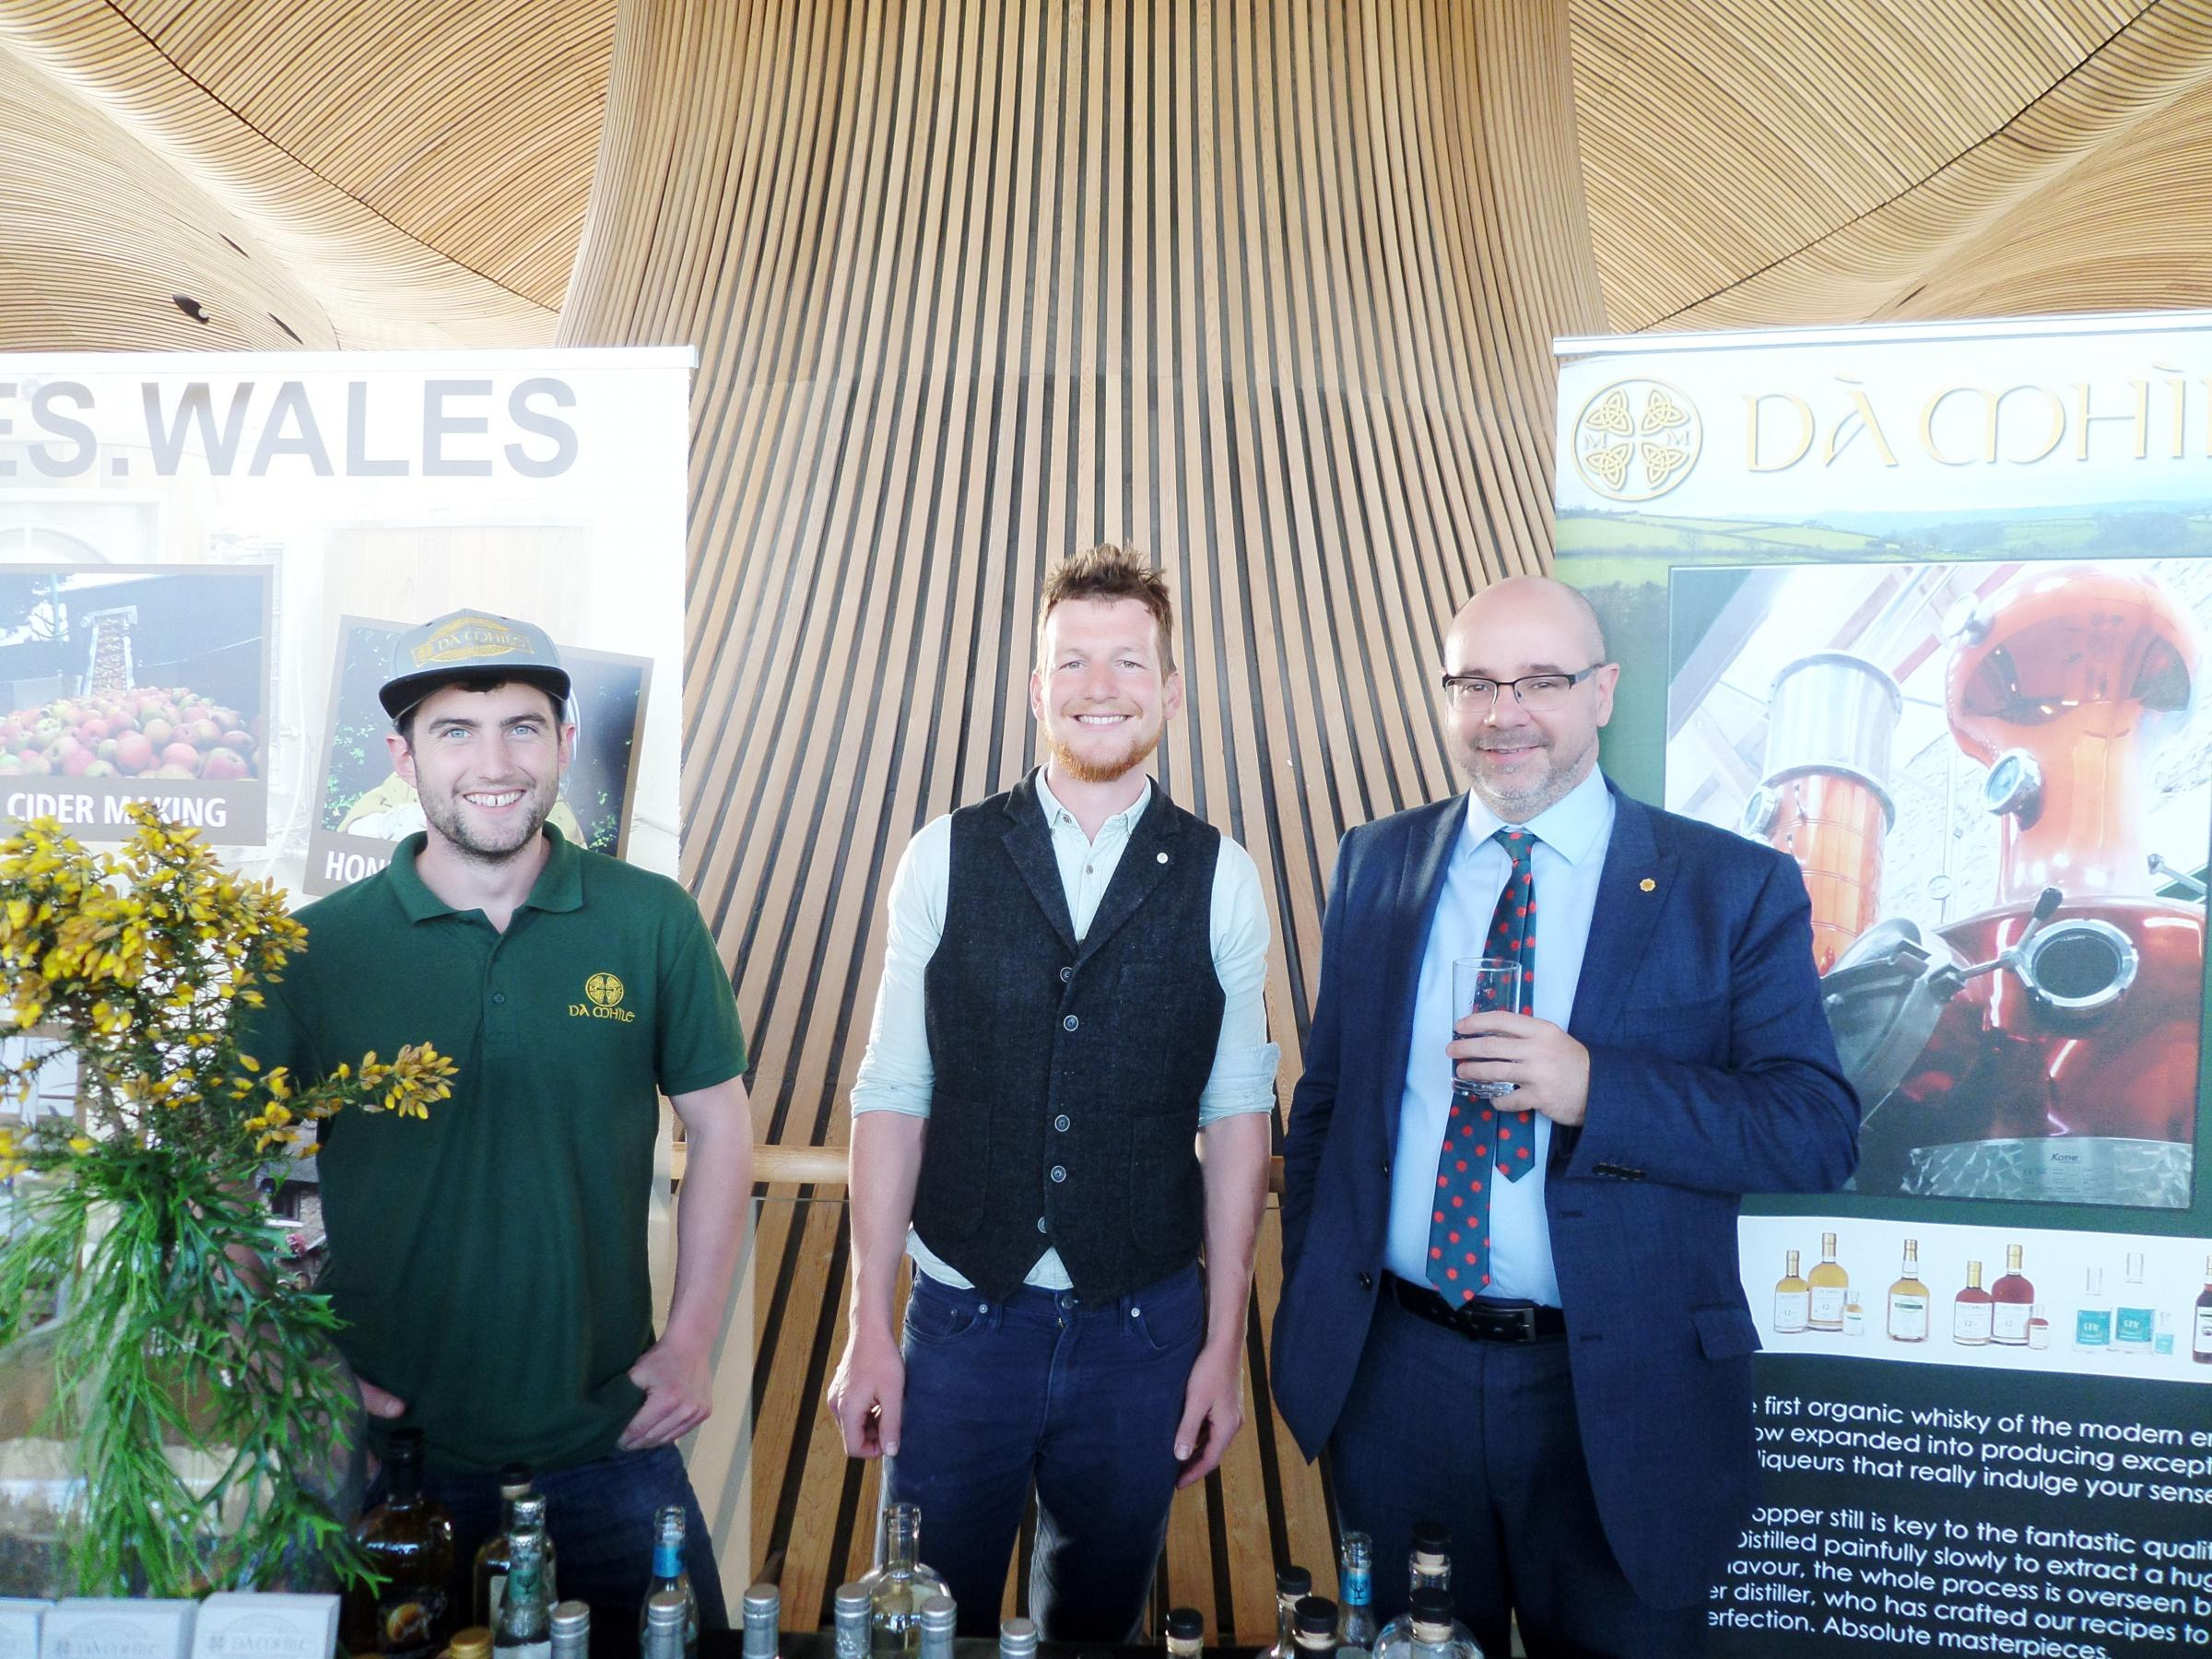 AM Simon Thomas (right) met with Rob and Finn from the Dà Mhìle Distillery at a showcase of producers in the Senedd